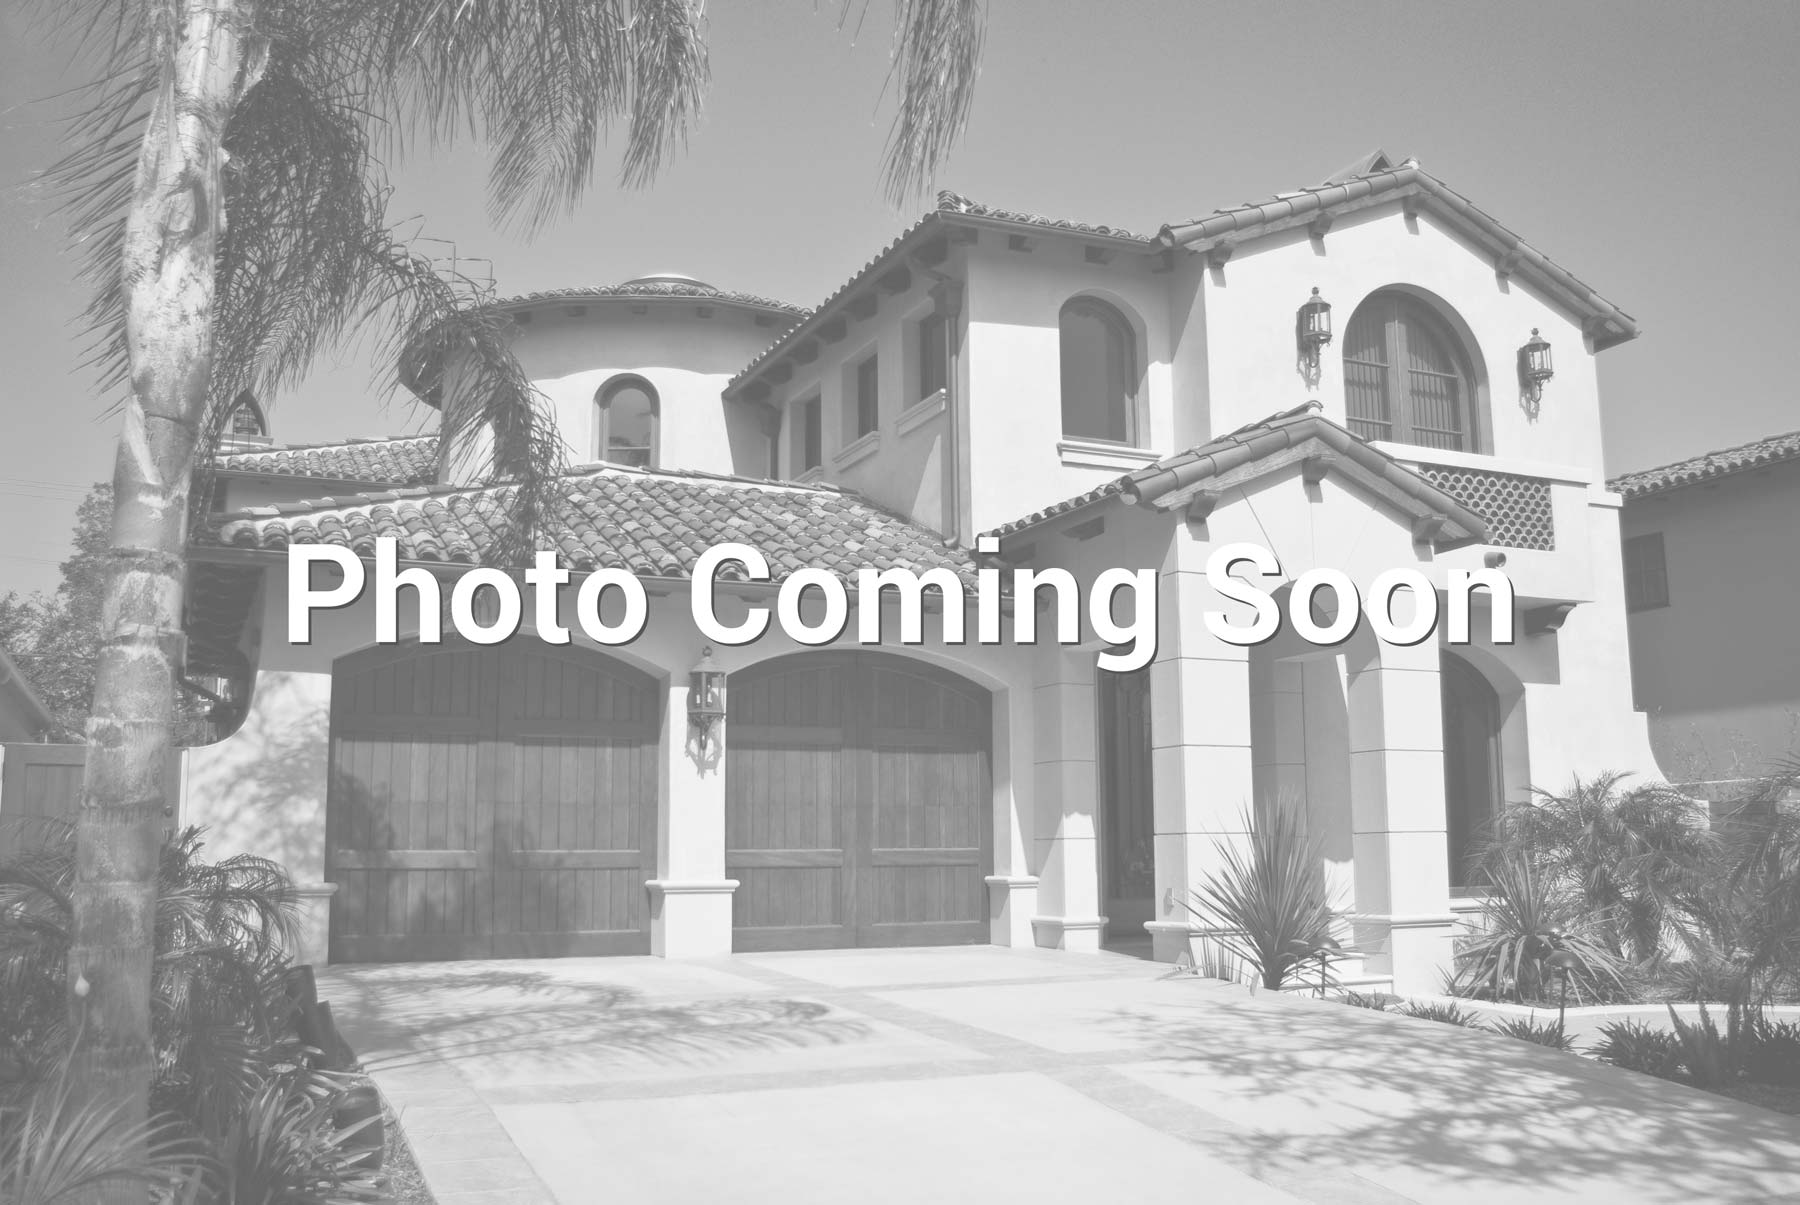 $105,000 - 4Br/2Ba -  for Sale in Bakersfield